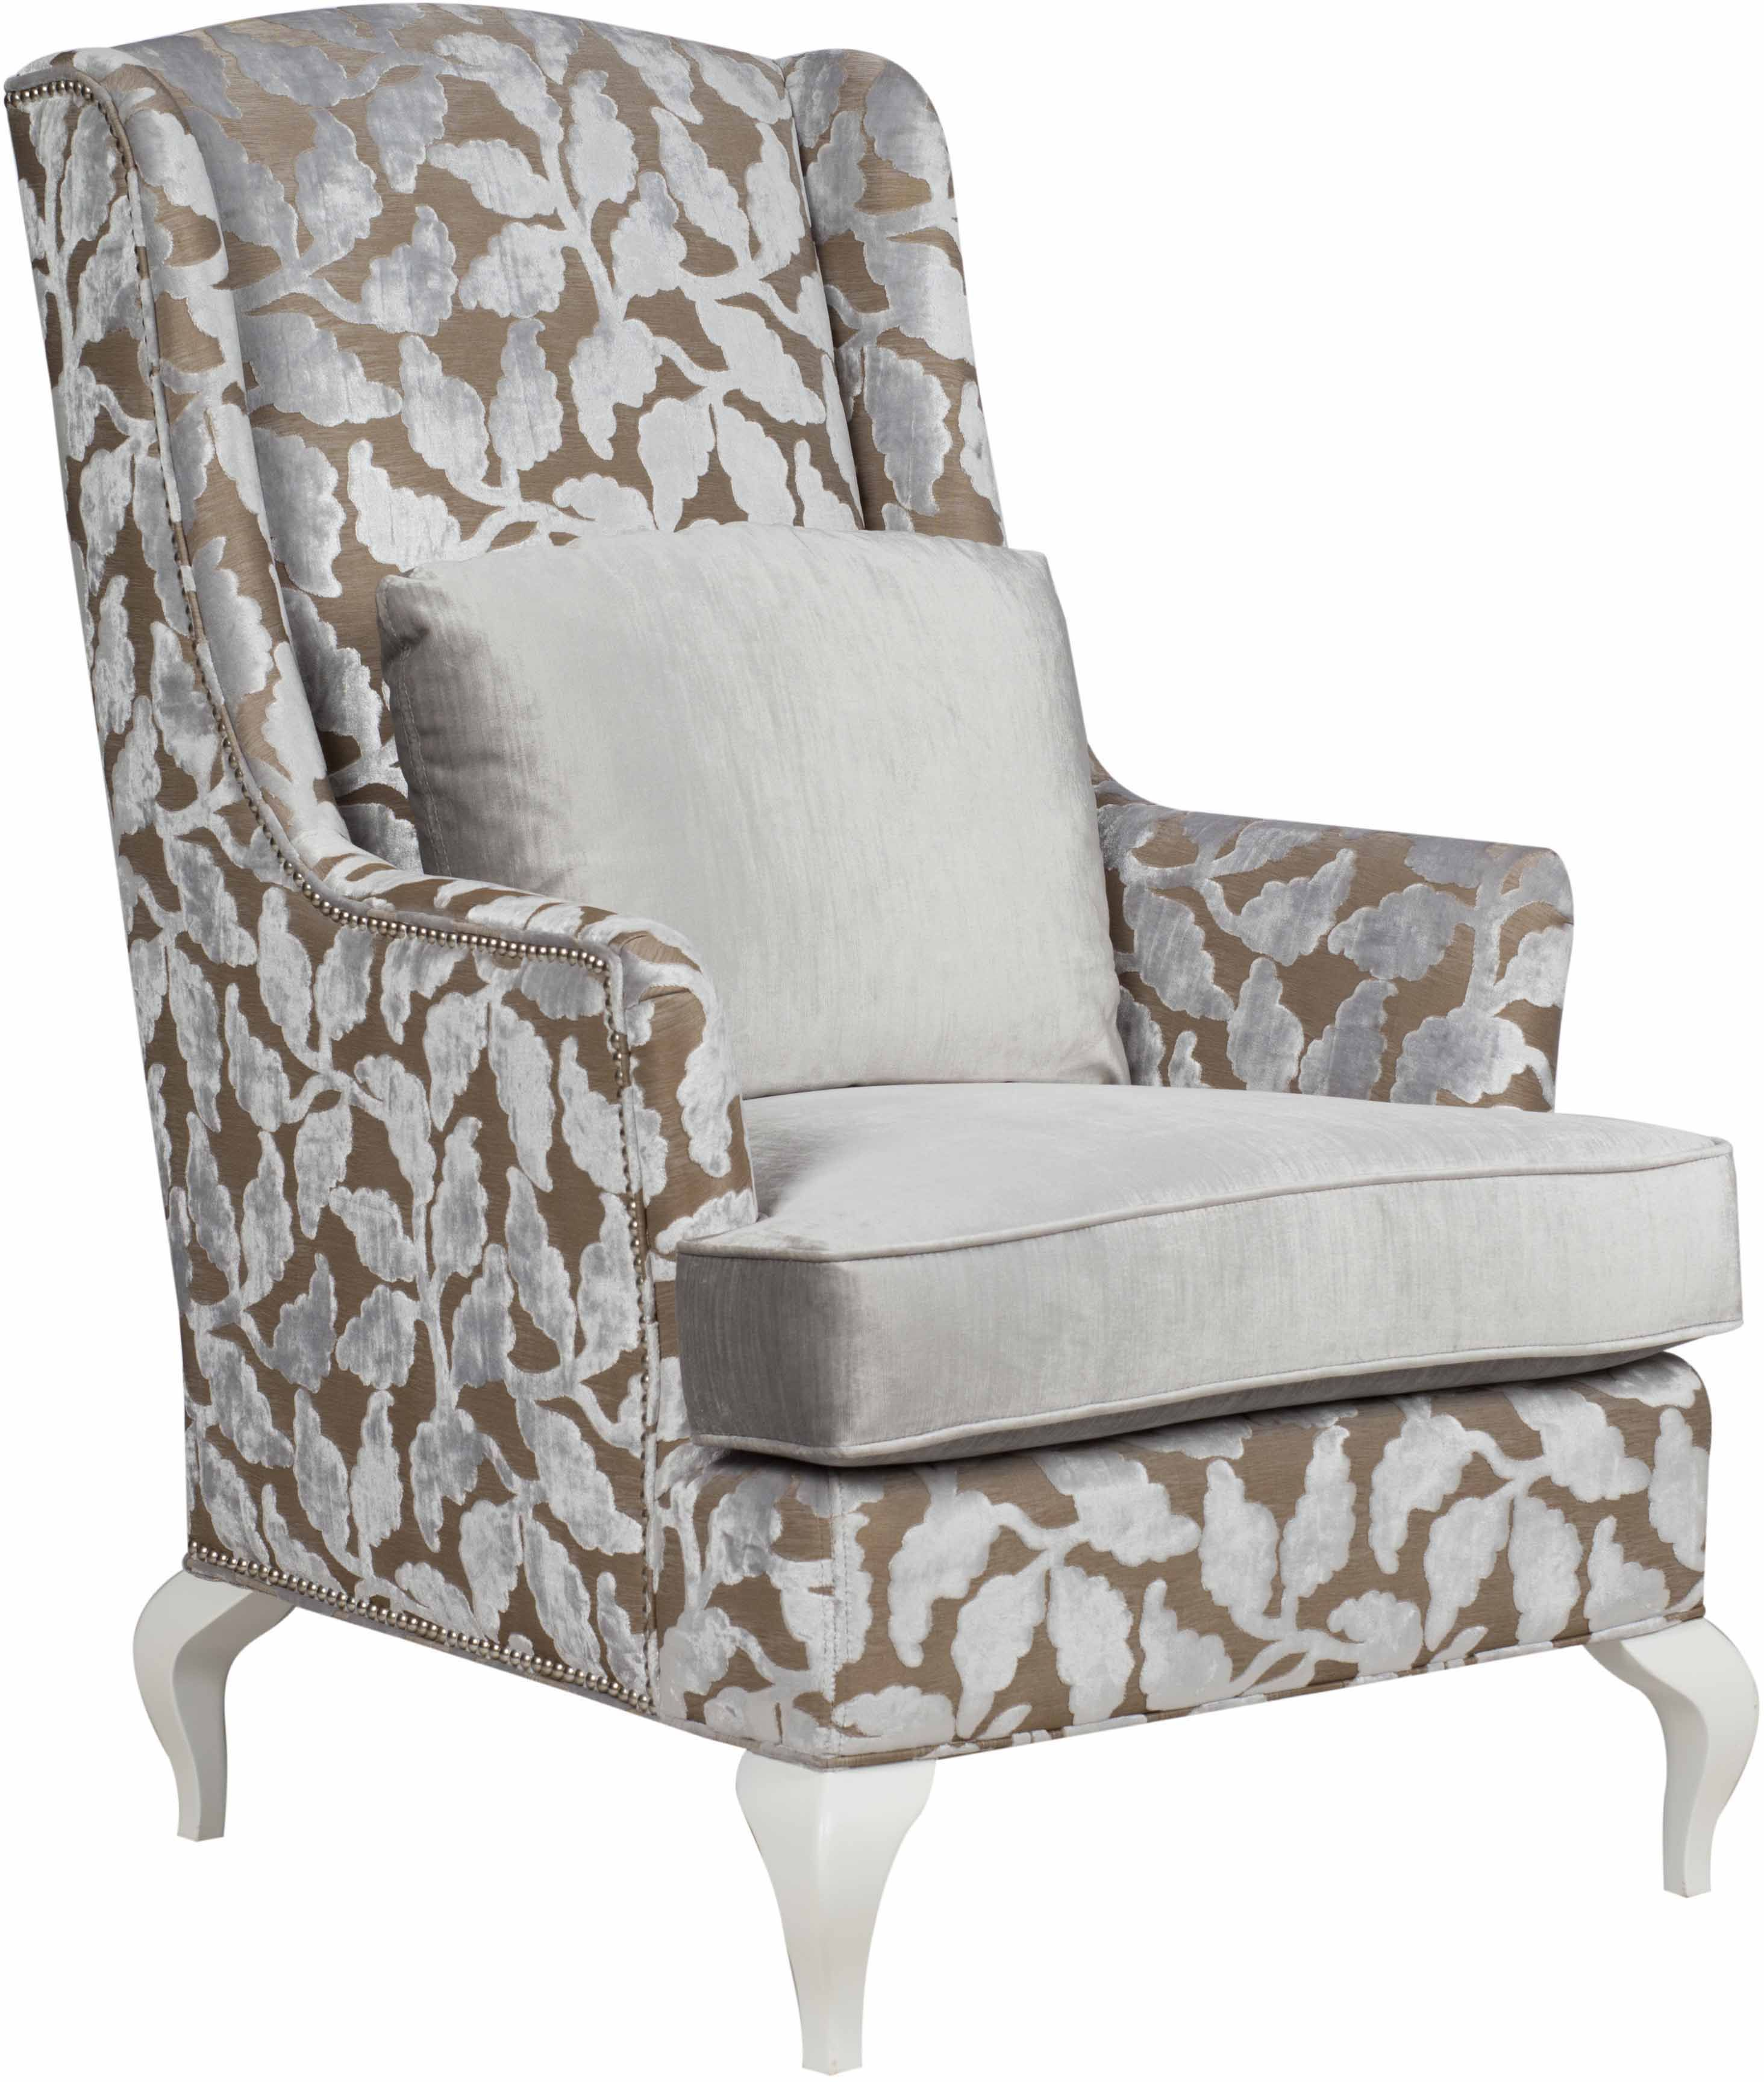 Marcantonio Designs Product Categories Chairs